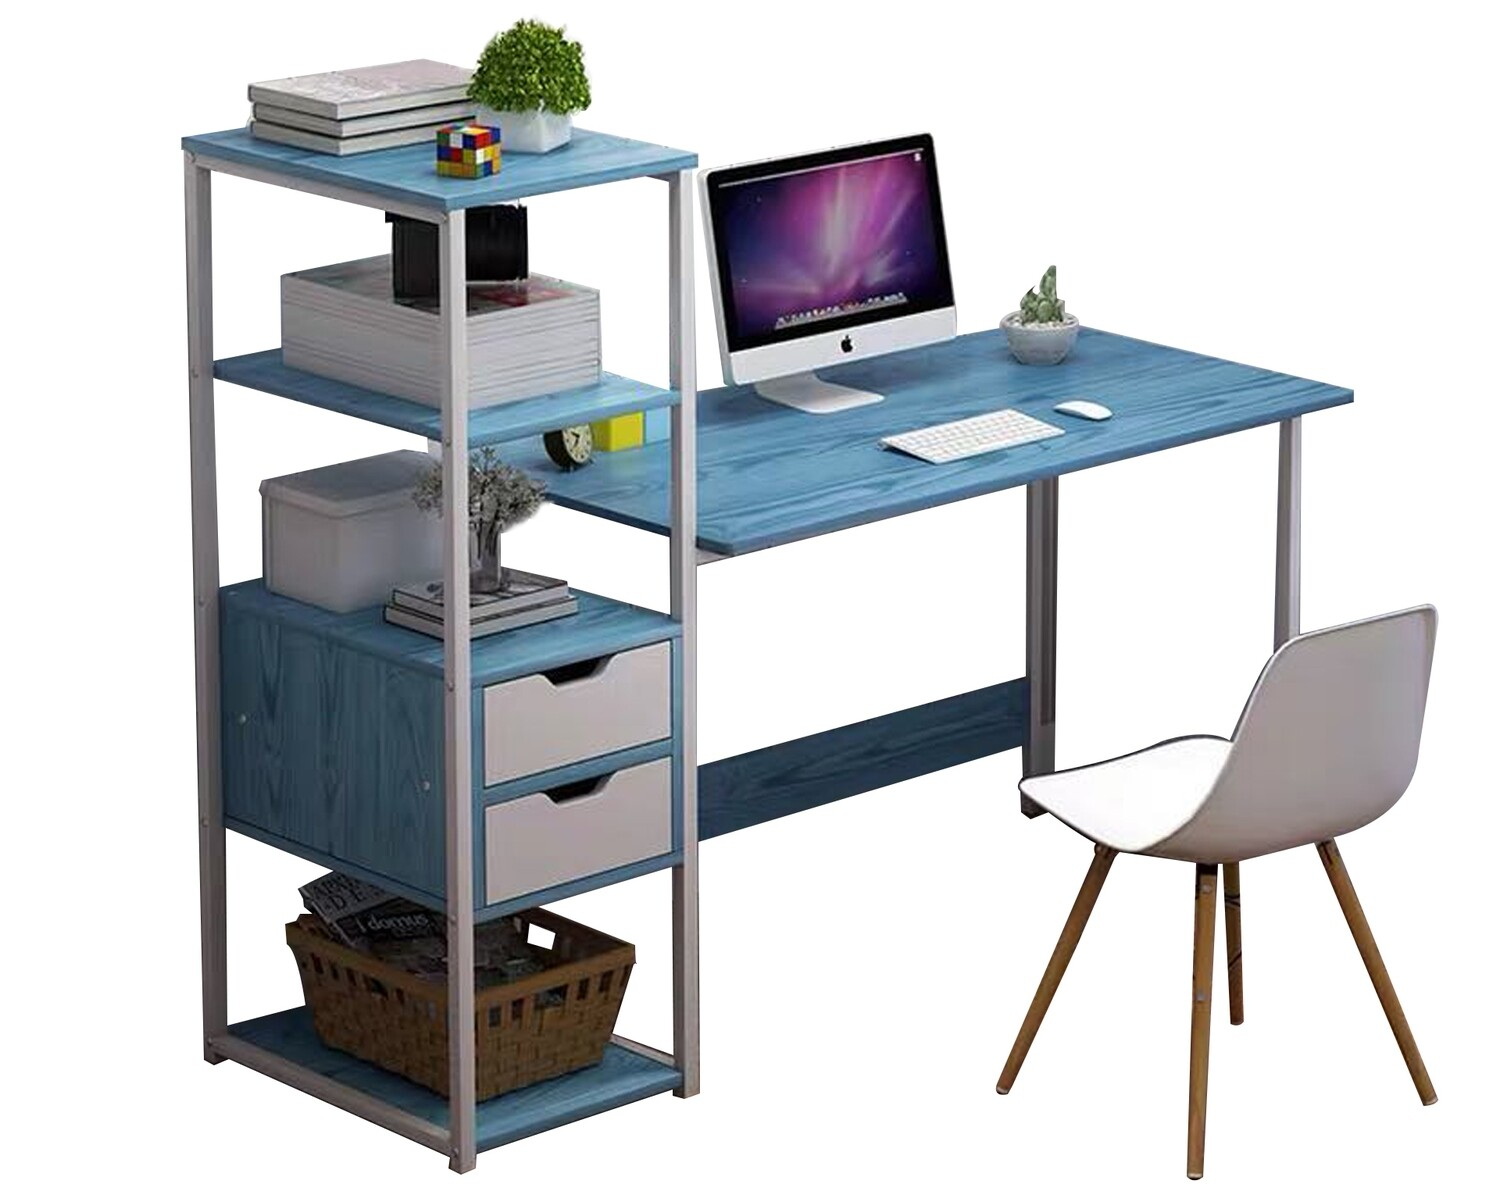 Ofix Desk 10 Light Top, Blue Top Chair Not Included